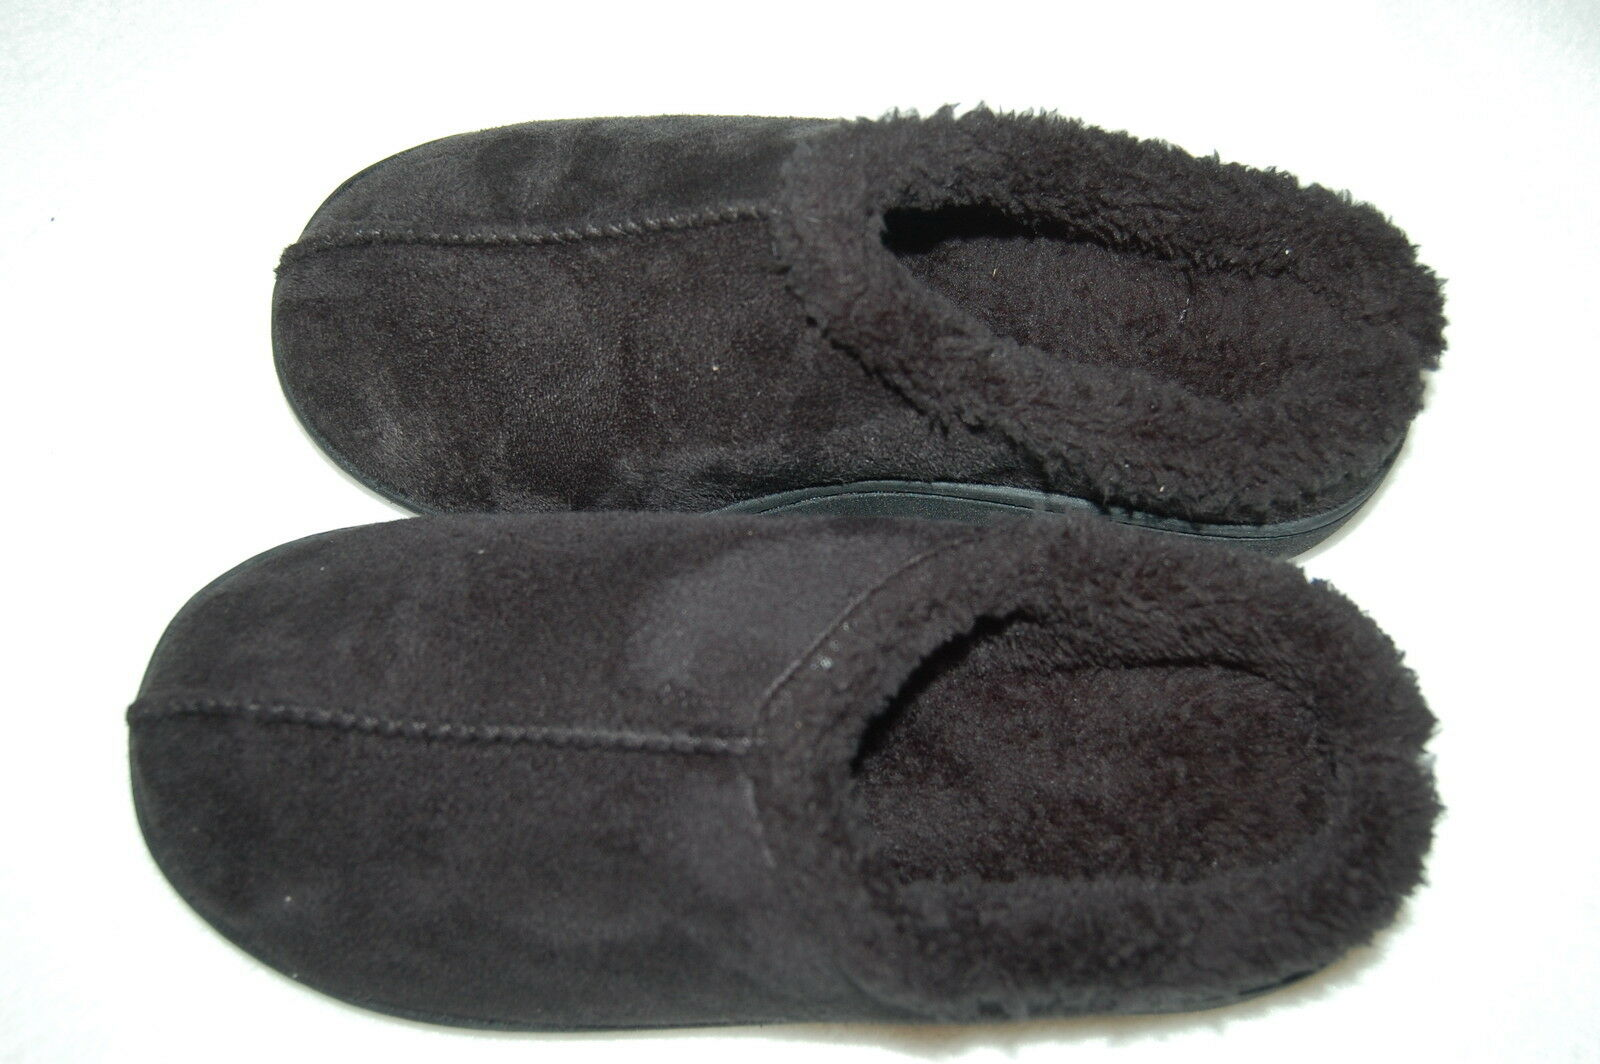 Womens BLACK SLIPPERS Slip On FAUX SUEDE Sherpa MEM FOAM Rubber Sole S 7-8